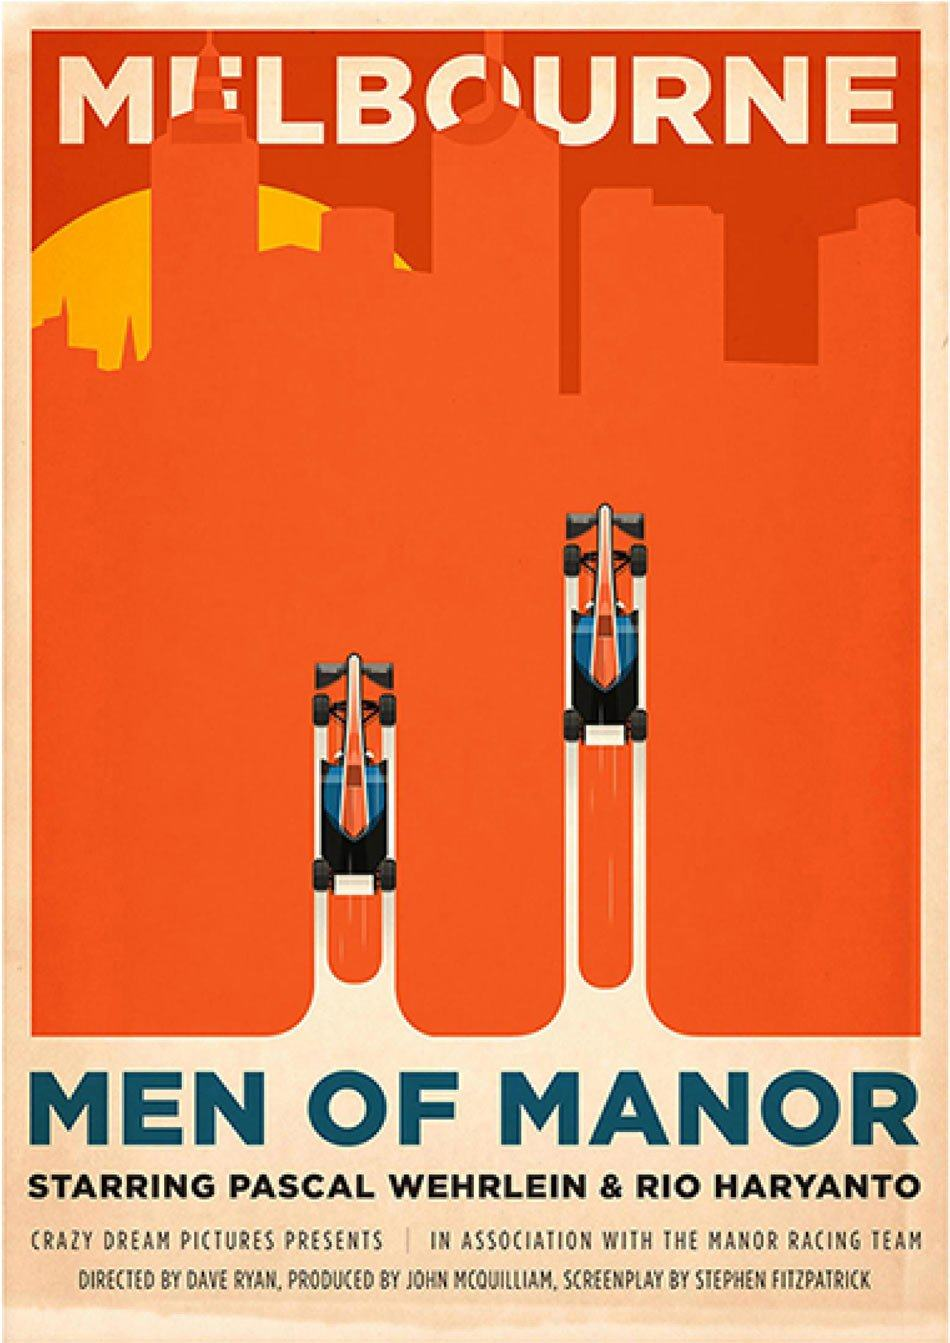 manor-racing-formula-f1-2016-melbourne-grand-prix-race-posters